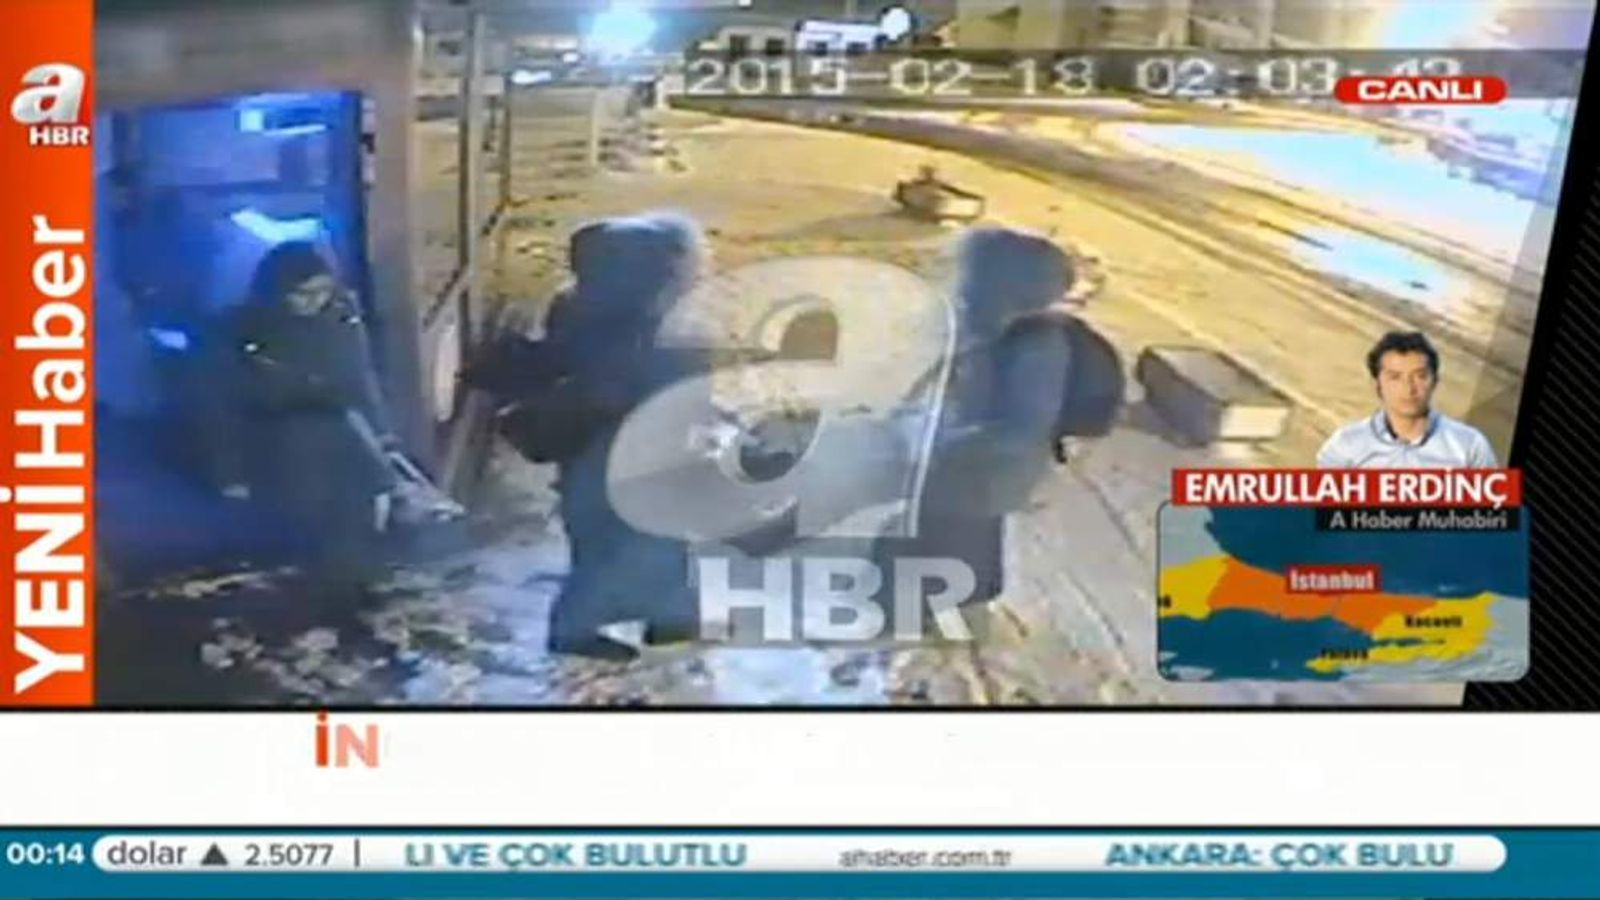 CCTV which appears to show the missing schoolgirls in Turkey.